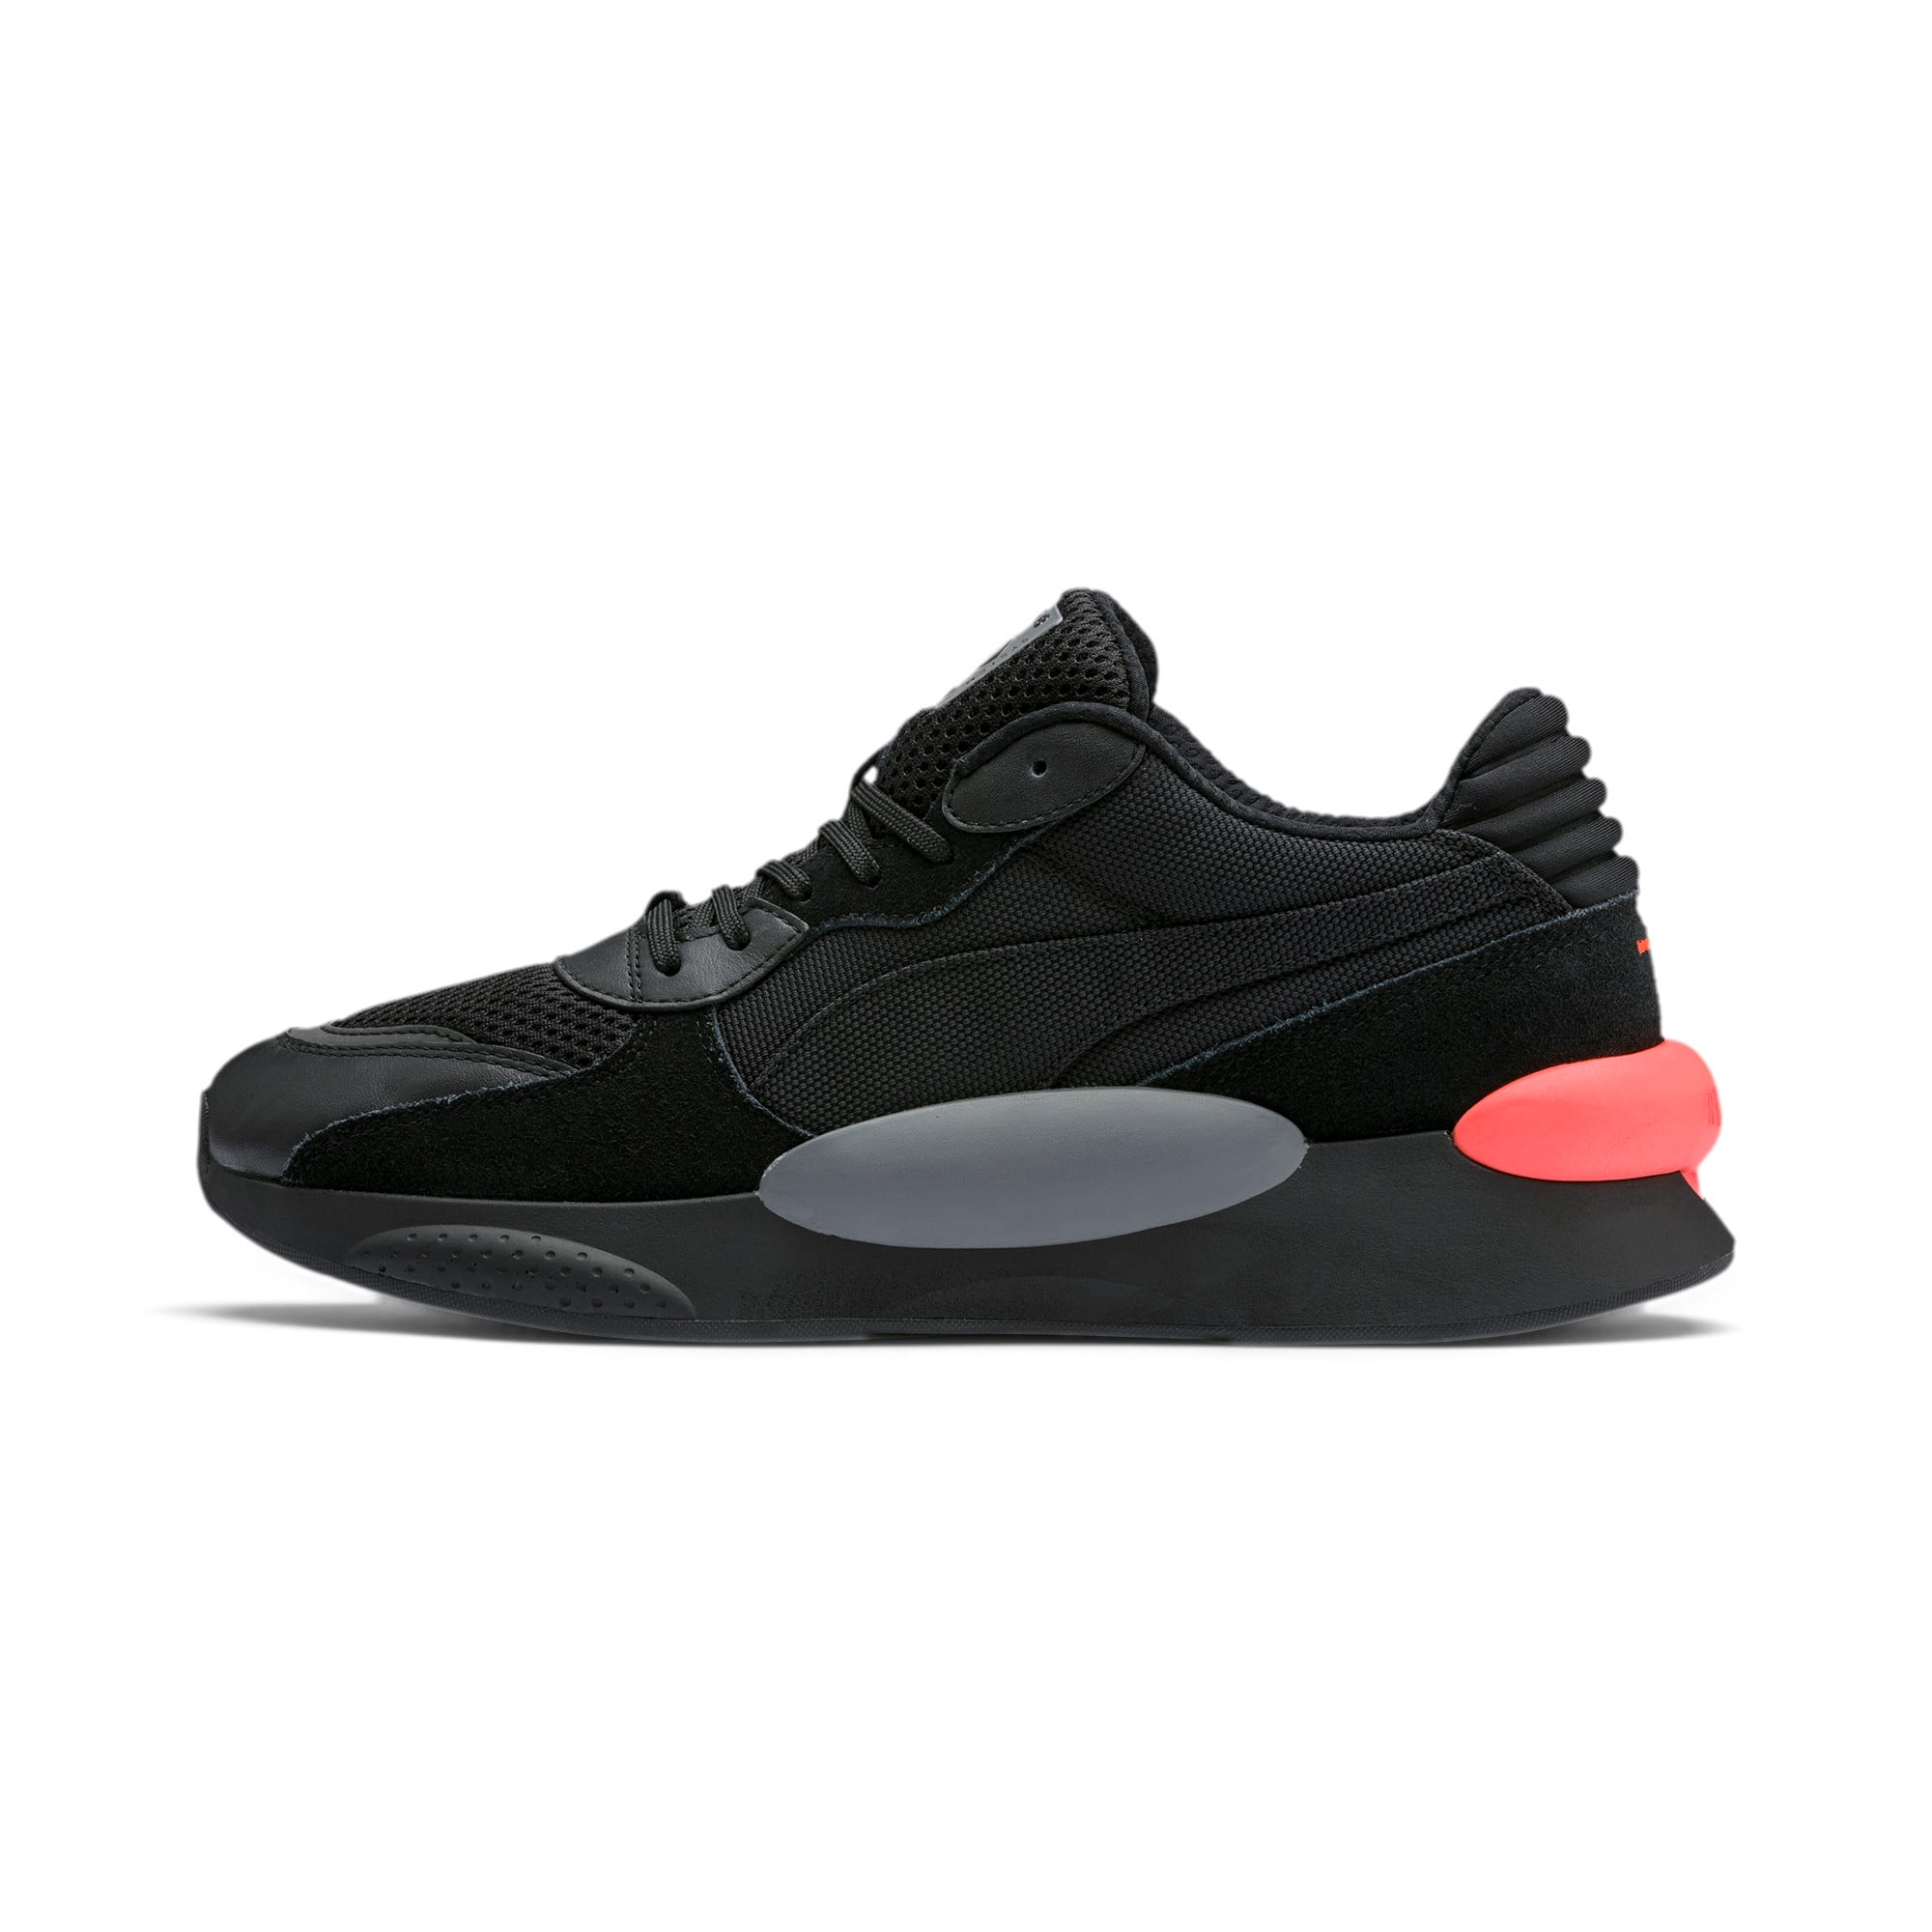 Thumbnail 1 of RS 9.8 Cosmic Trainers, Puma Black, medium